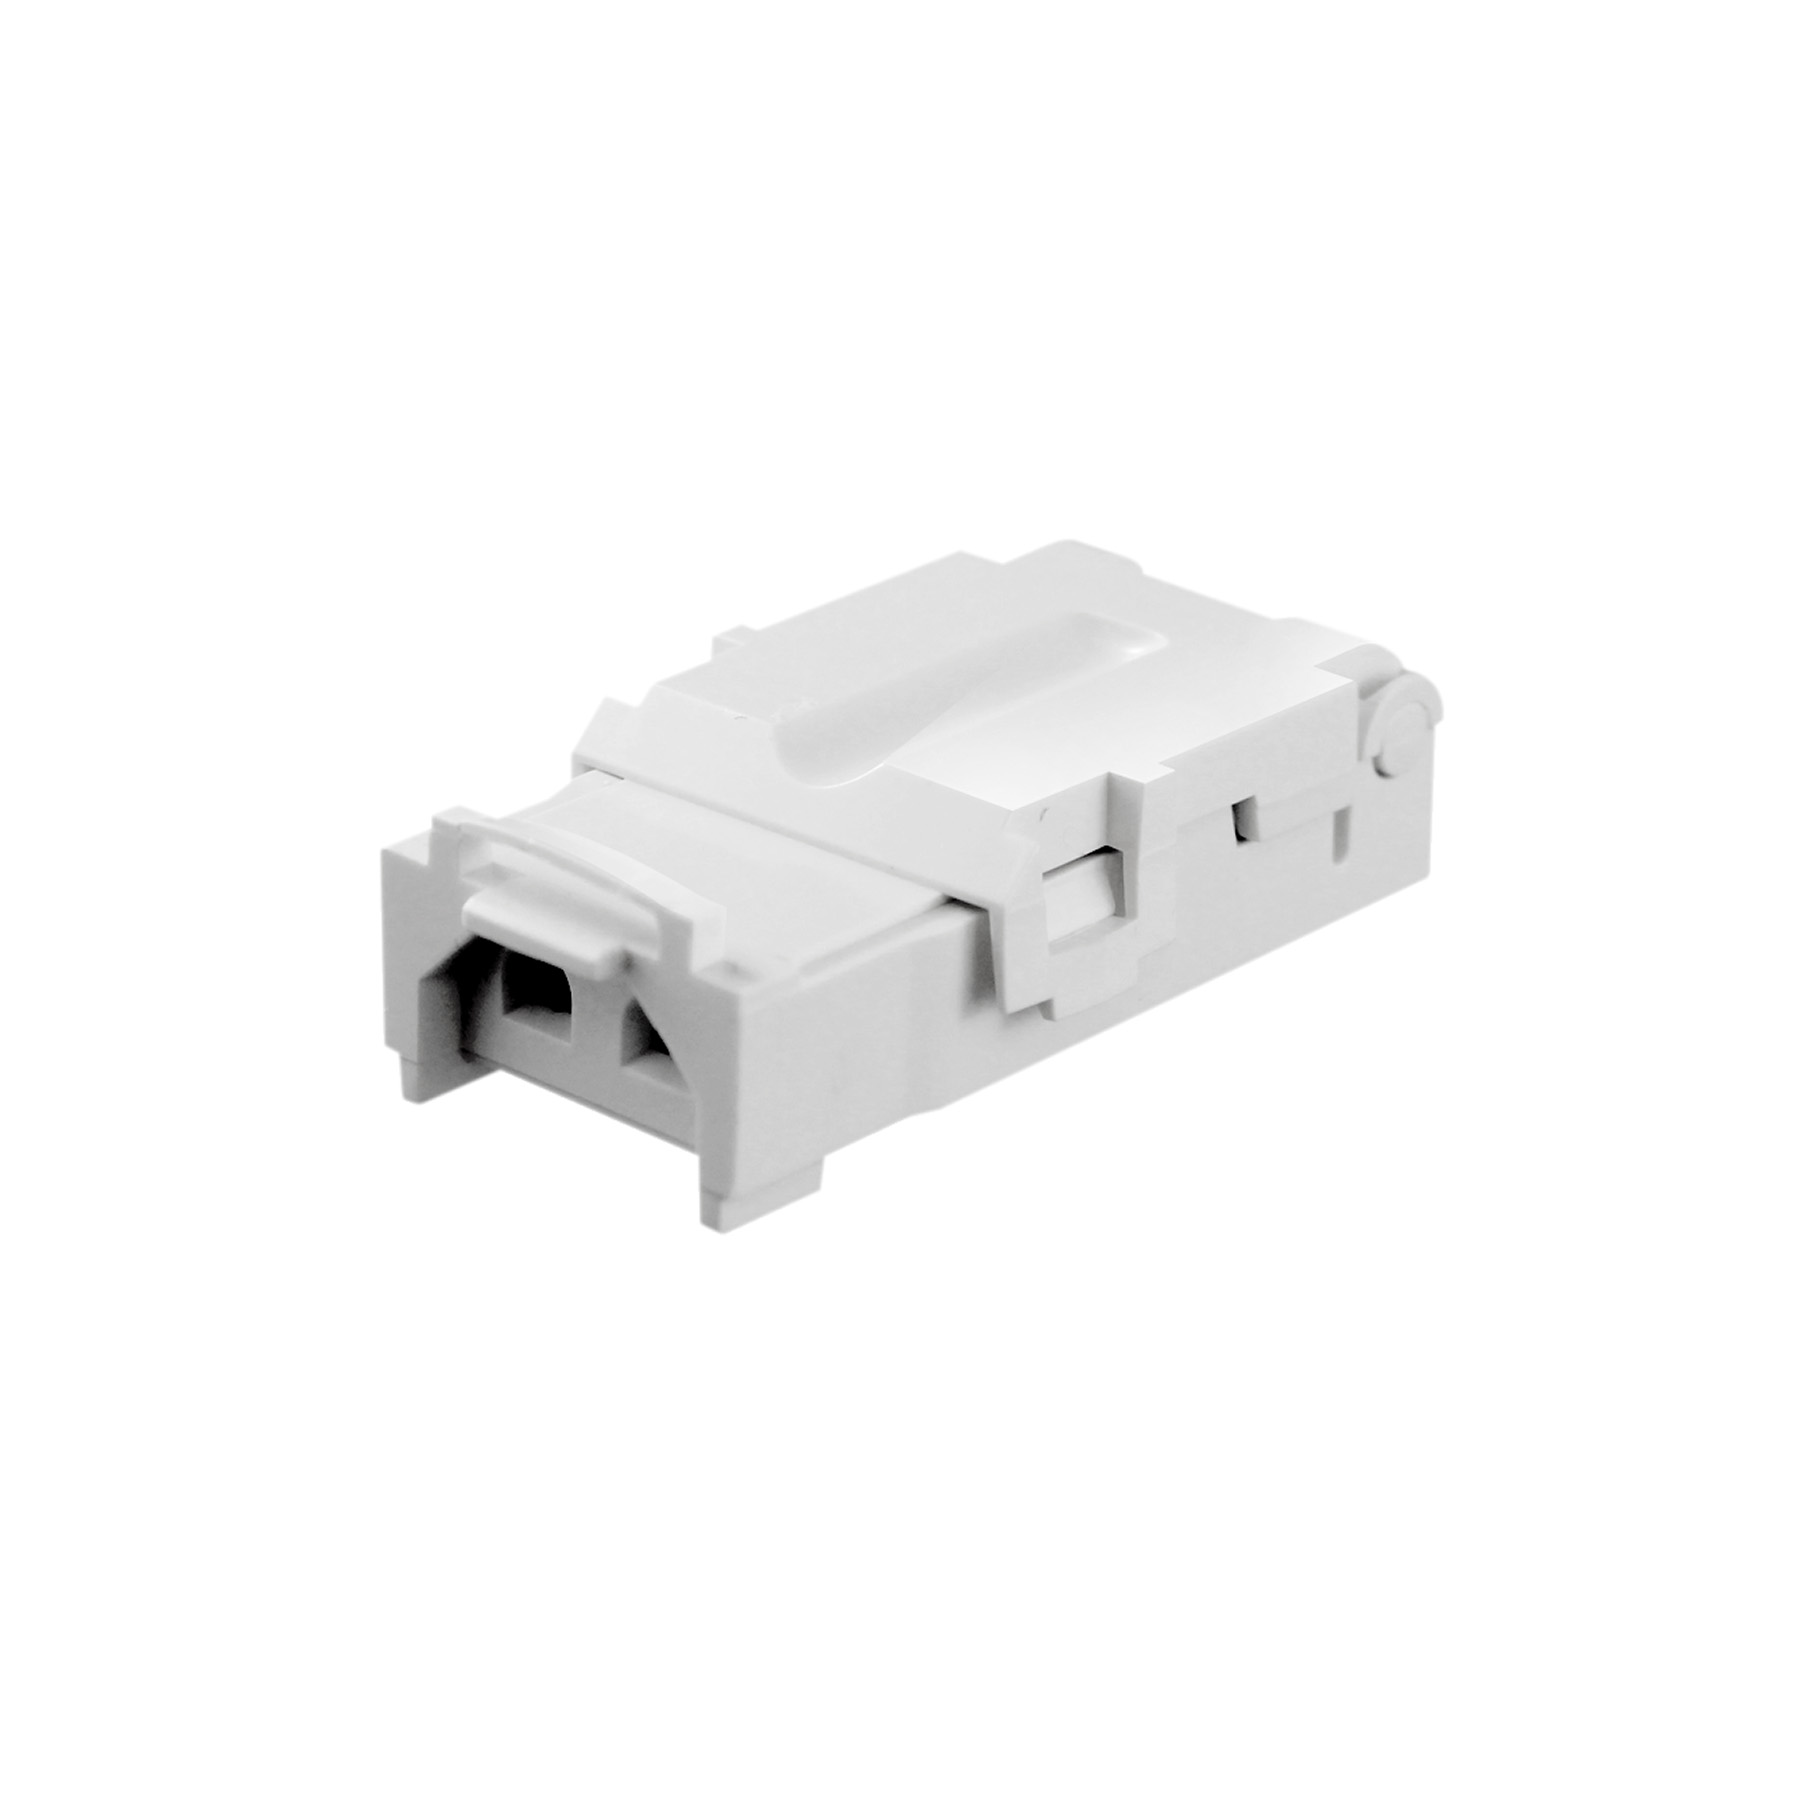 NuTone® E-Box Only for use w/ CI399 Electra-Valve II Inlets